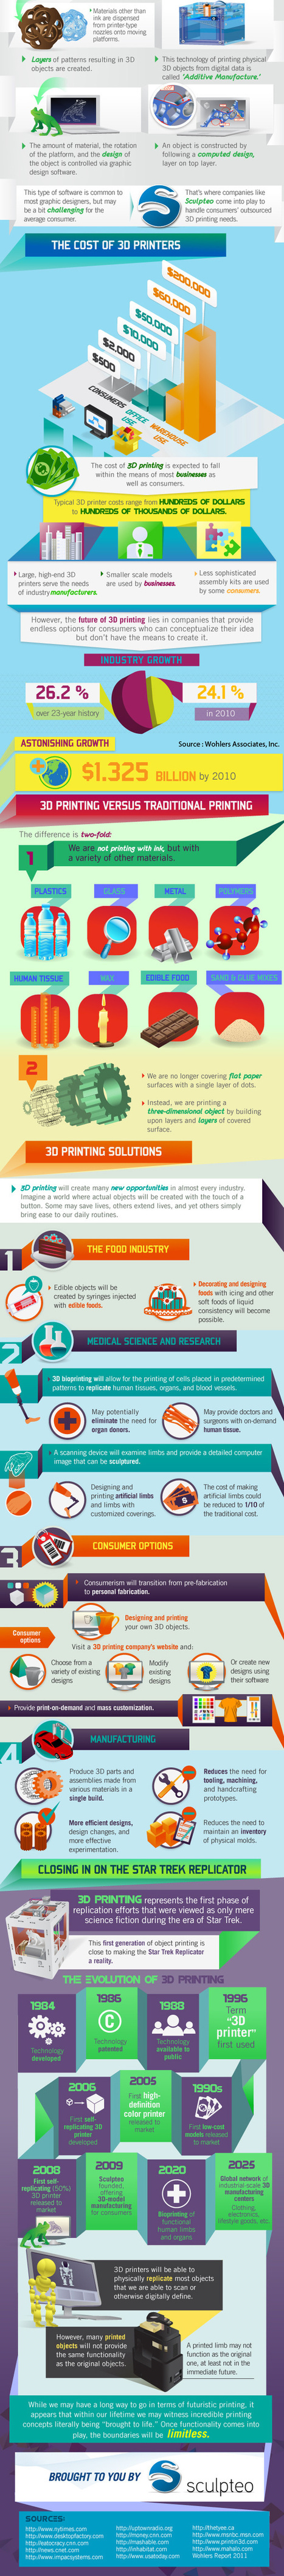 Why 3D Printing is the Future {Infographic} - Best Infographics | Gear, Gadgets & Gizmos | Scoop.it